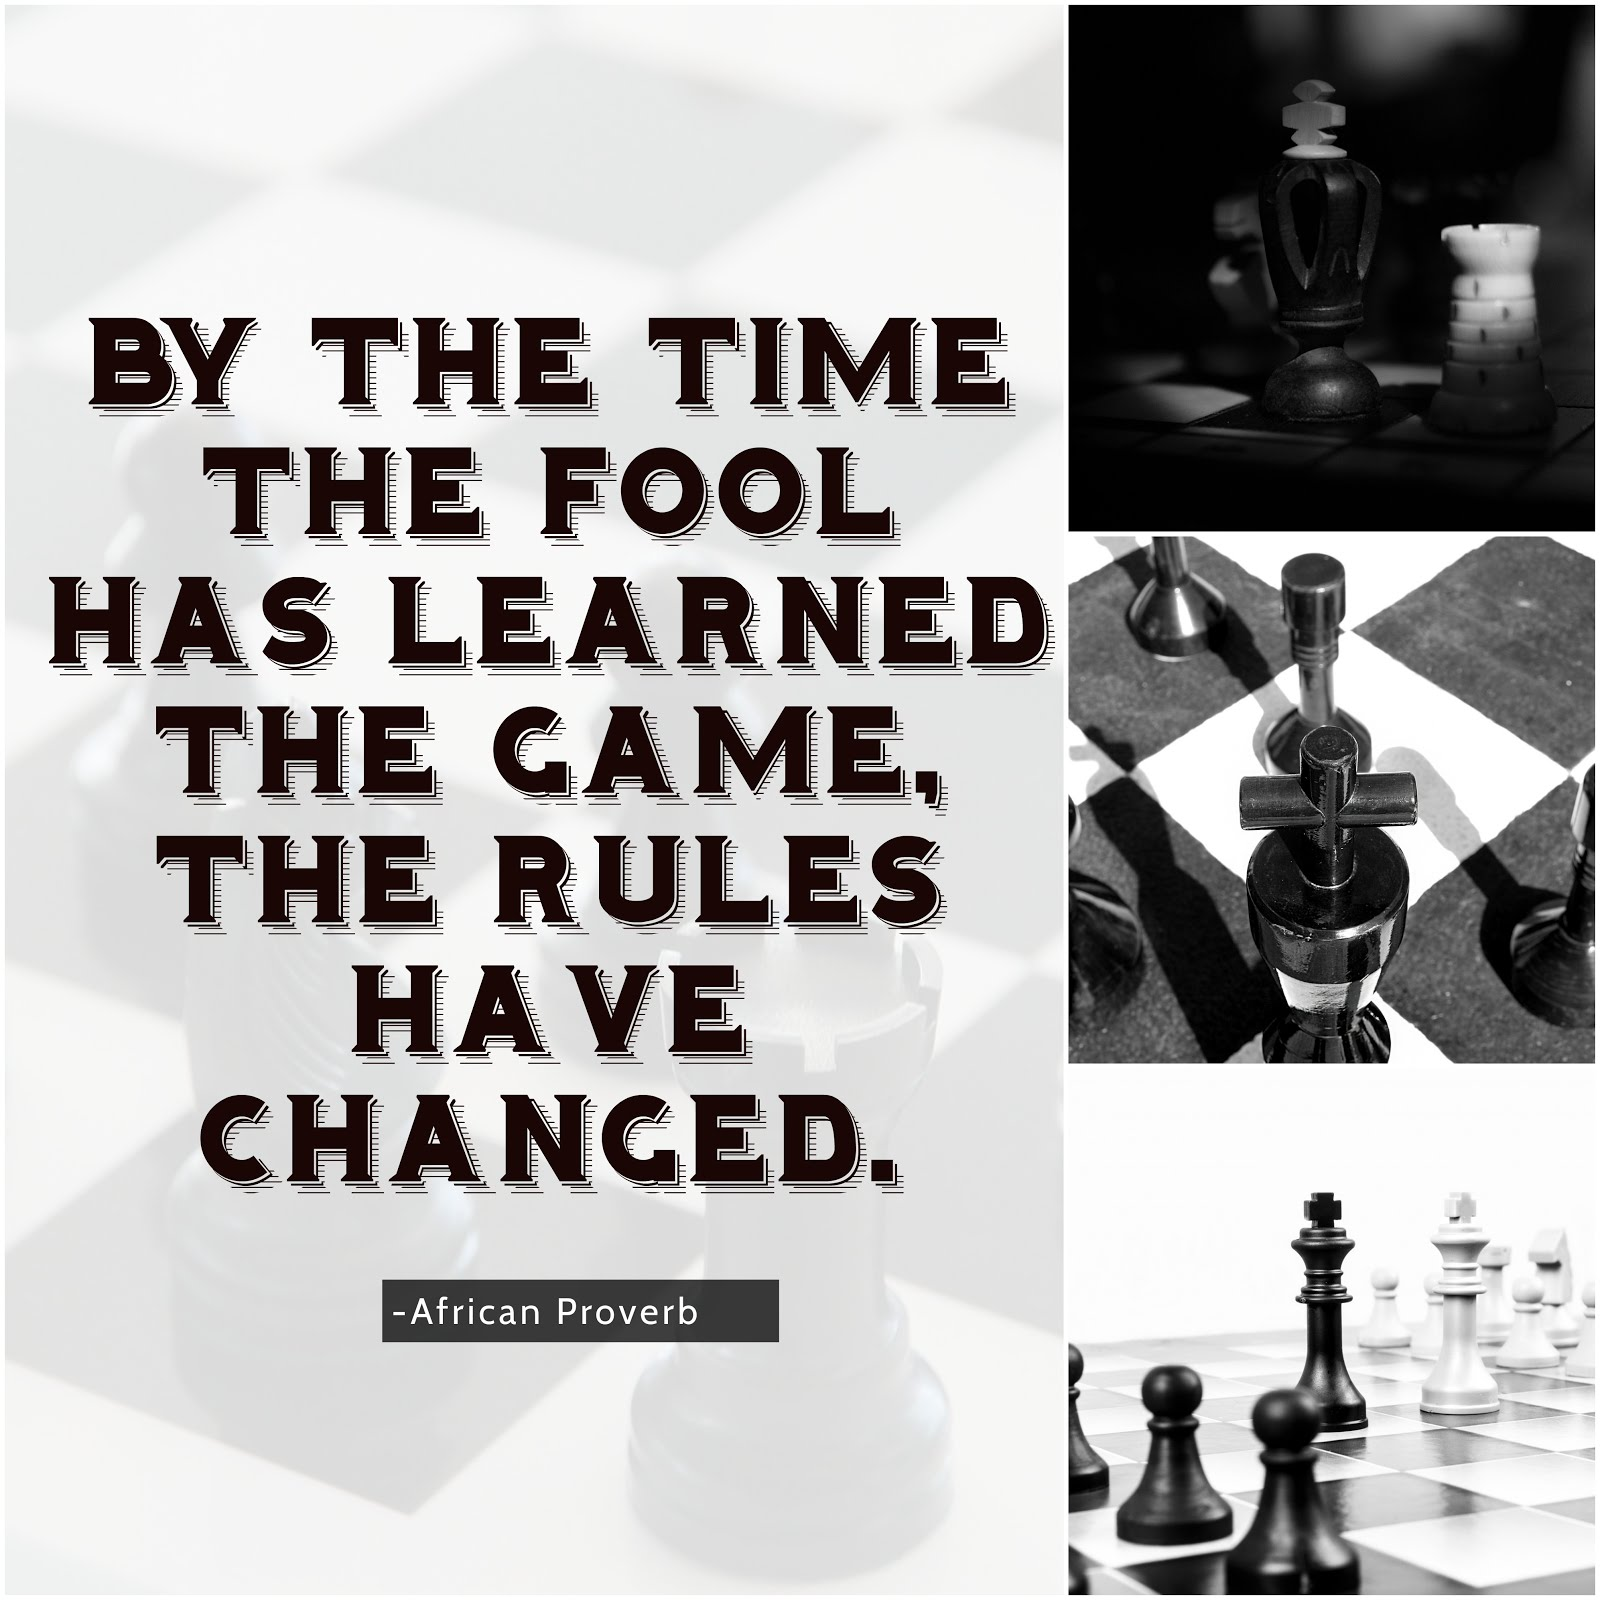 By the time the fool has learned the game, the rules have changed